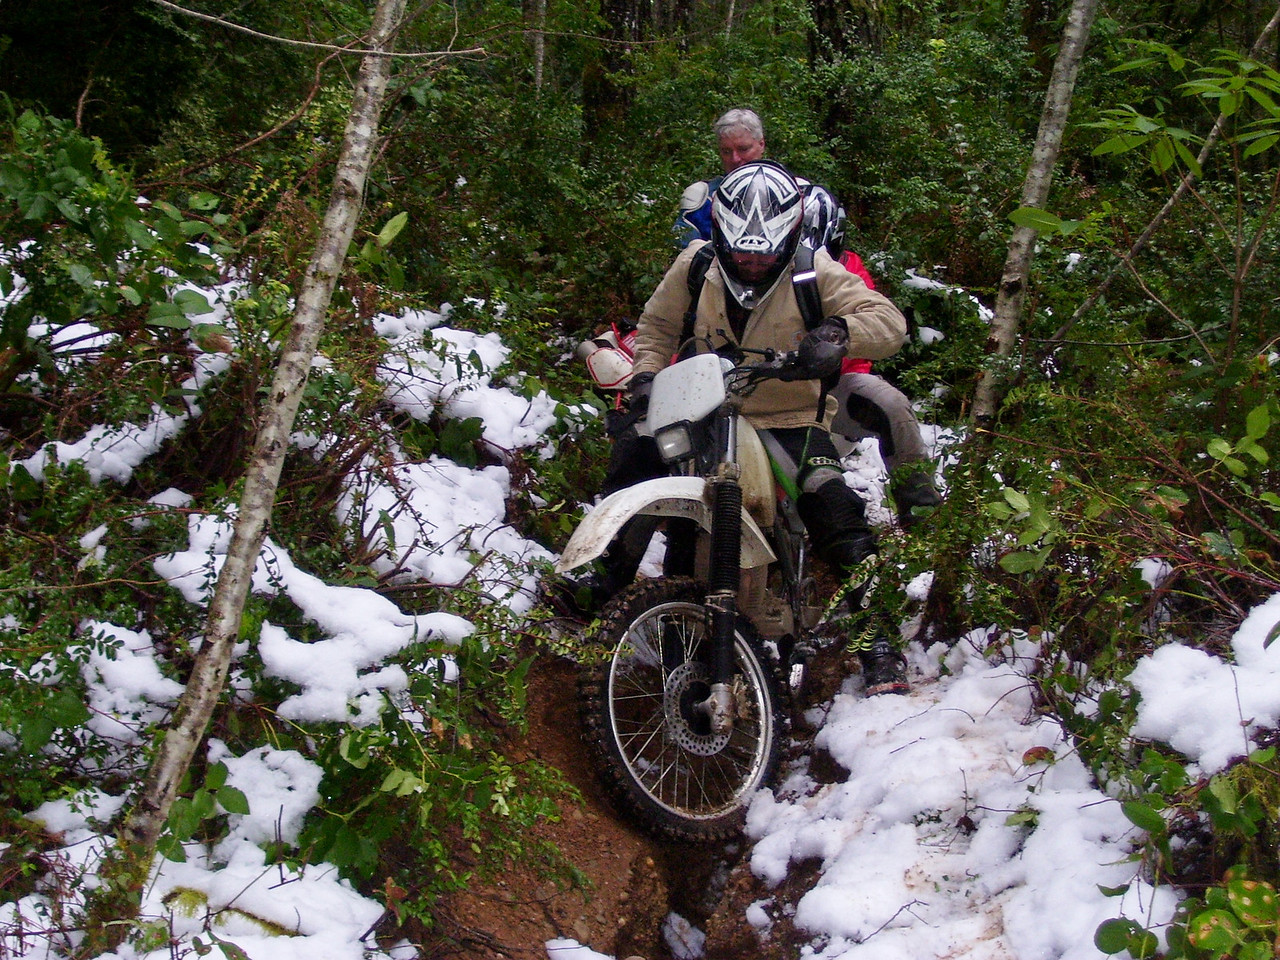 Jon inches his bike down the gouged out trail wondering if this is a good idea. We may have to turn around and come back up this mess.